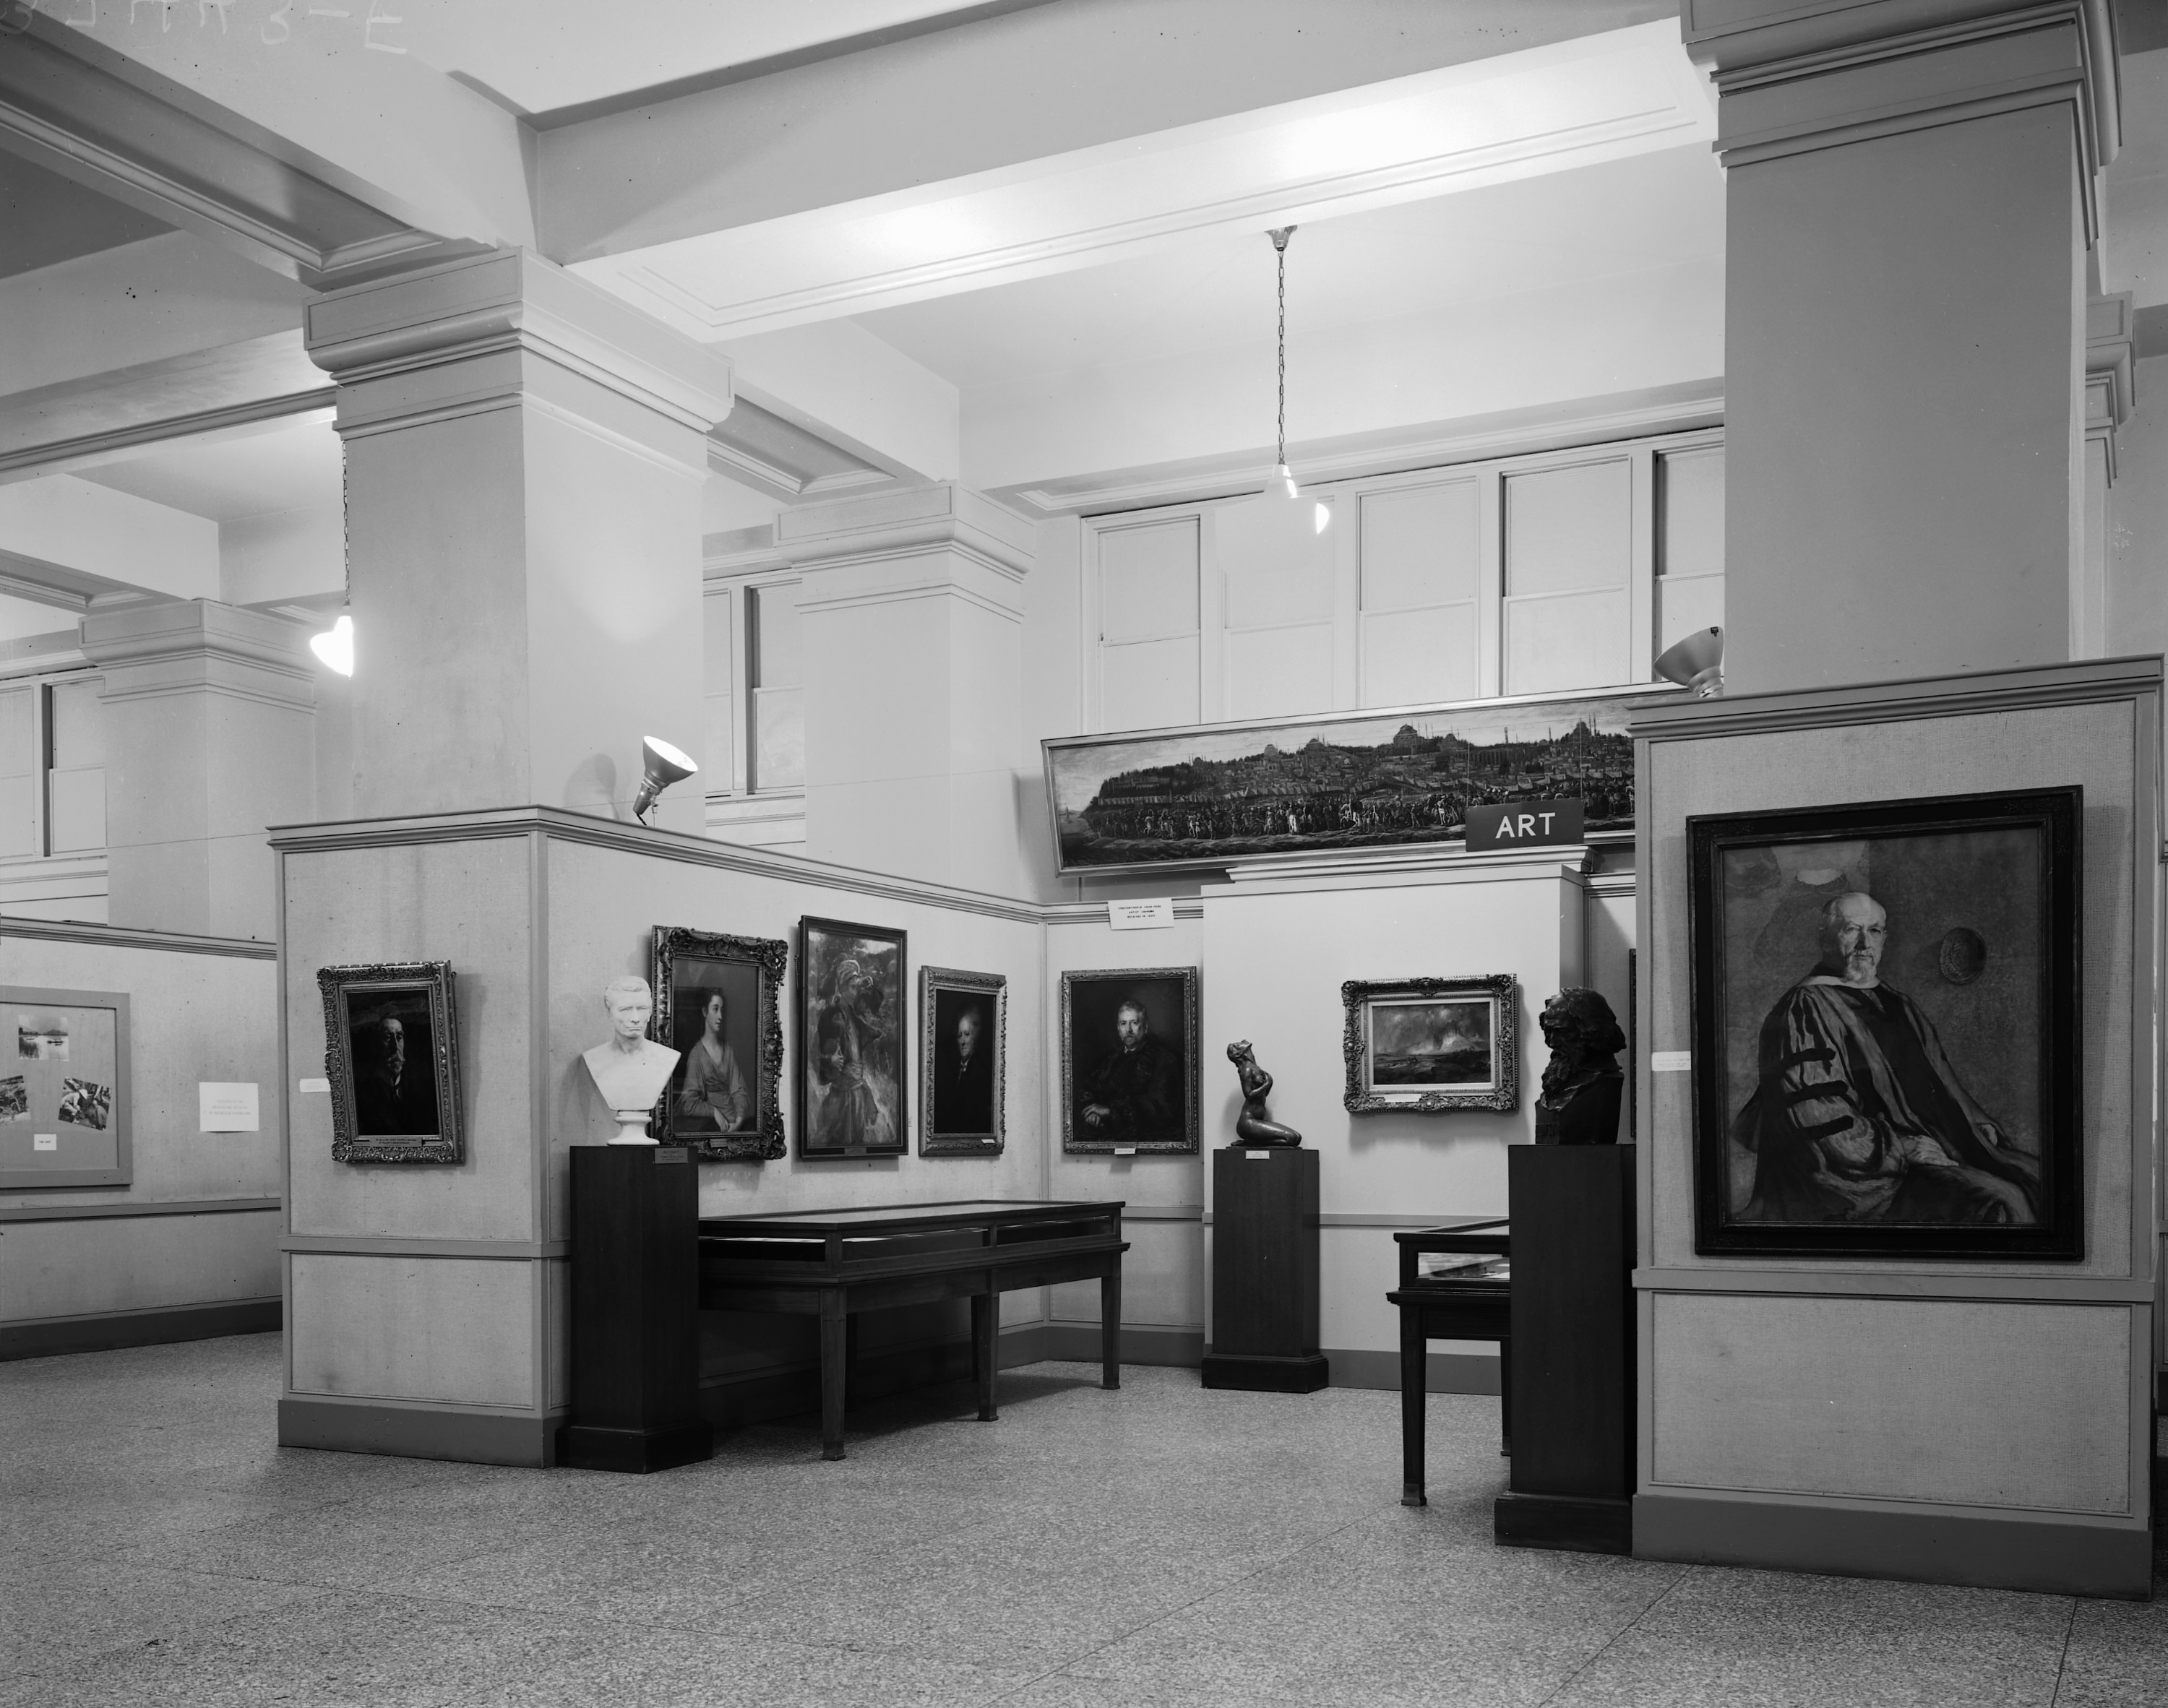 Section about the history of art collecting activities that features portraits, busts, and a sculptu